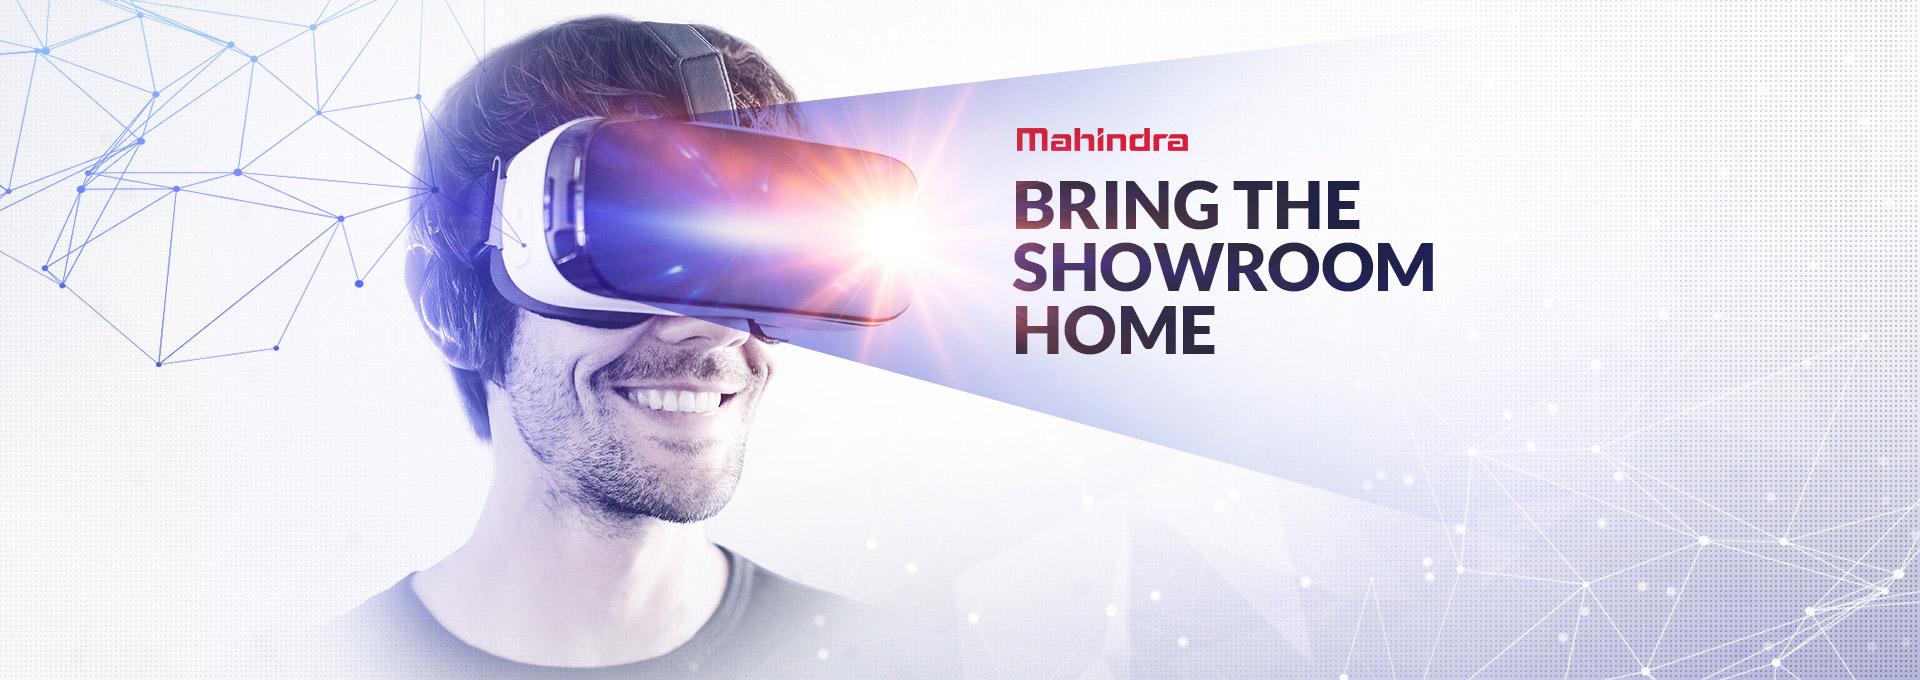 Automotive Mahindra Bring Showroom Home